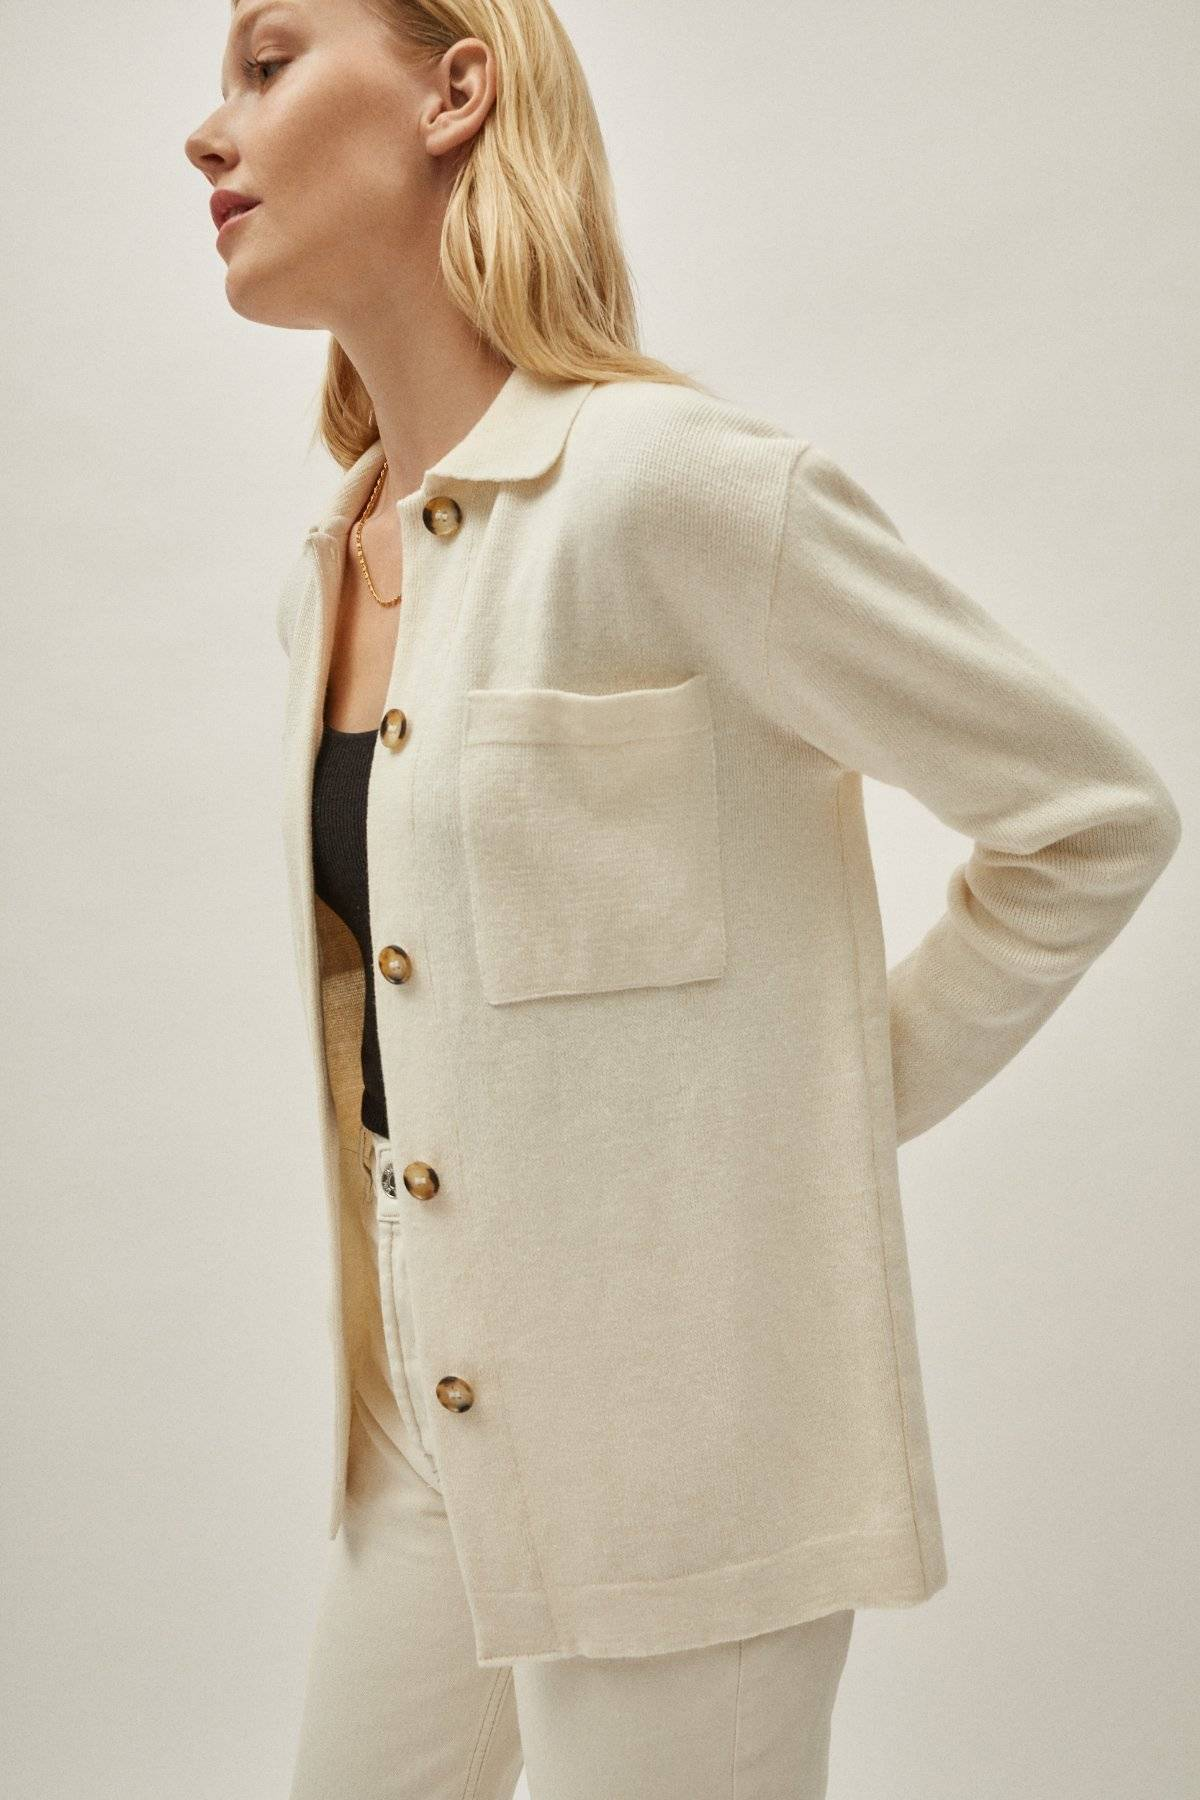 The Linen Cotton Overshirt - Ivory